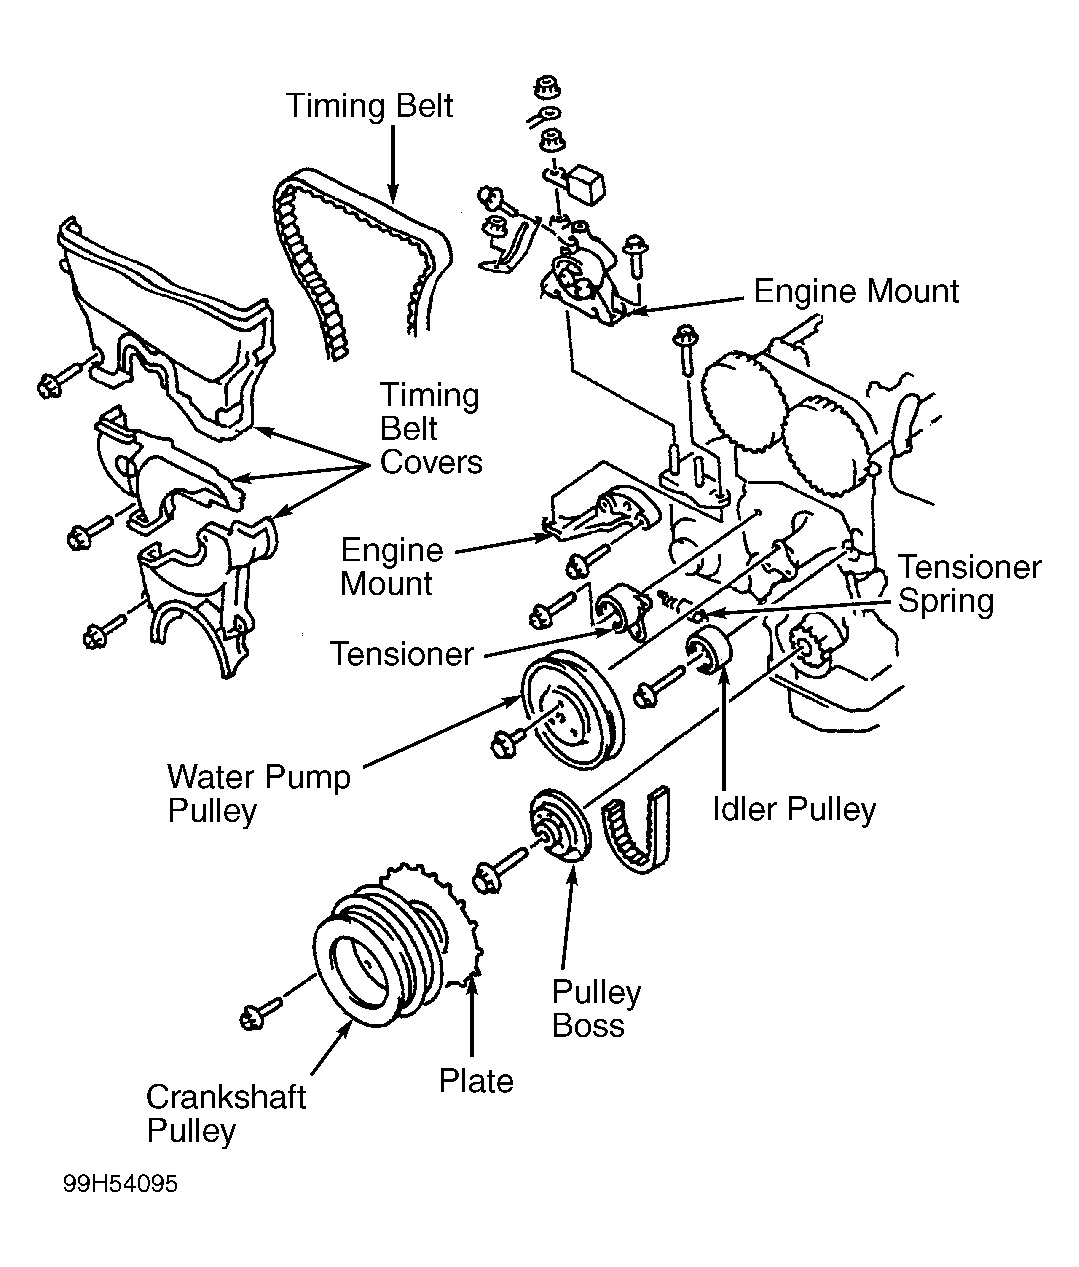 2003 mazda protege5 parts diagram